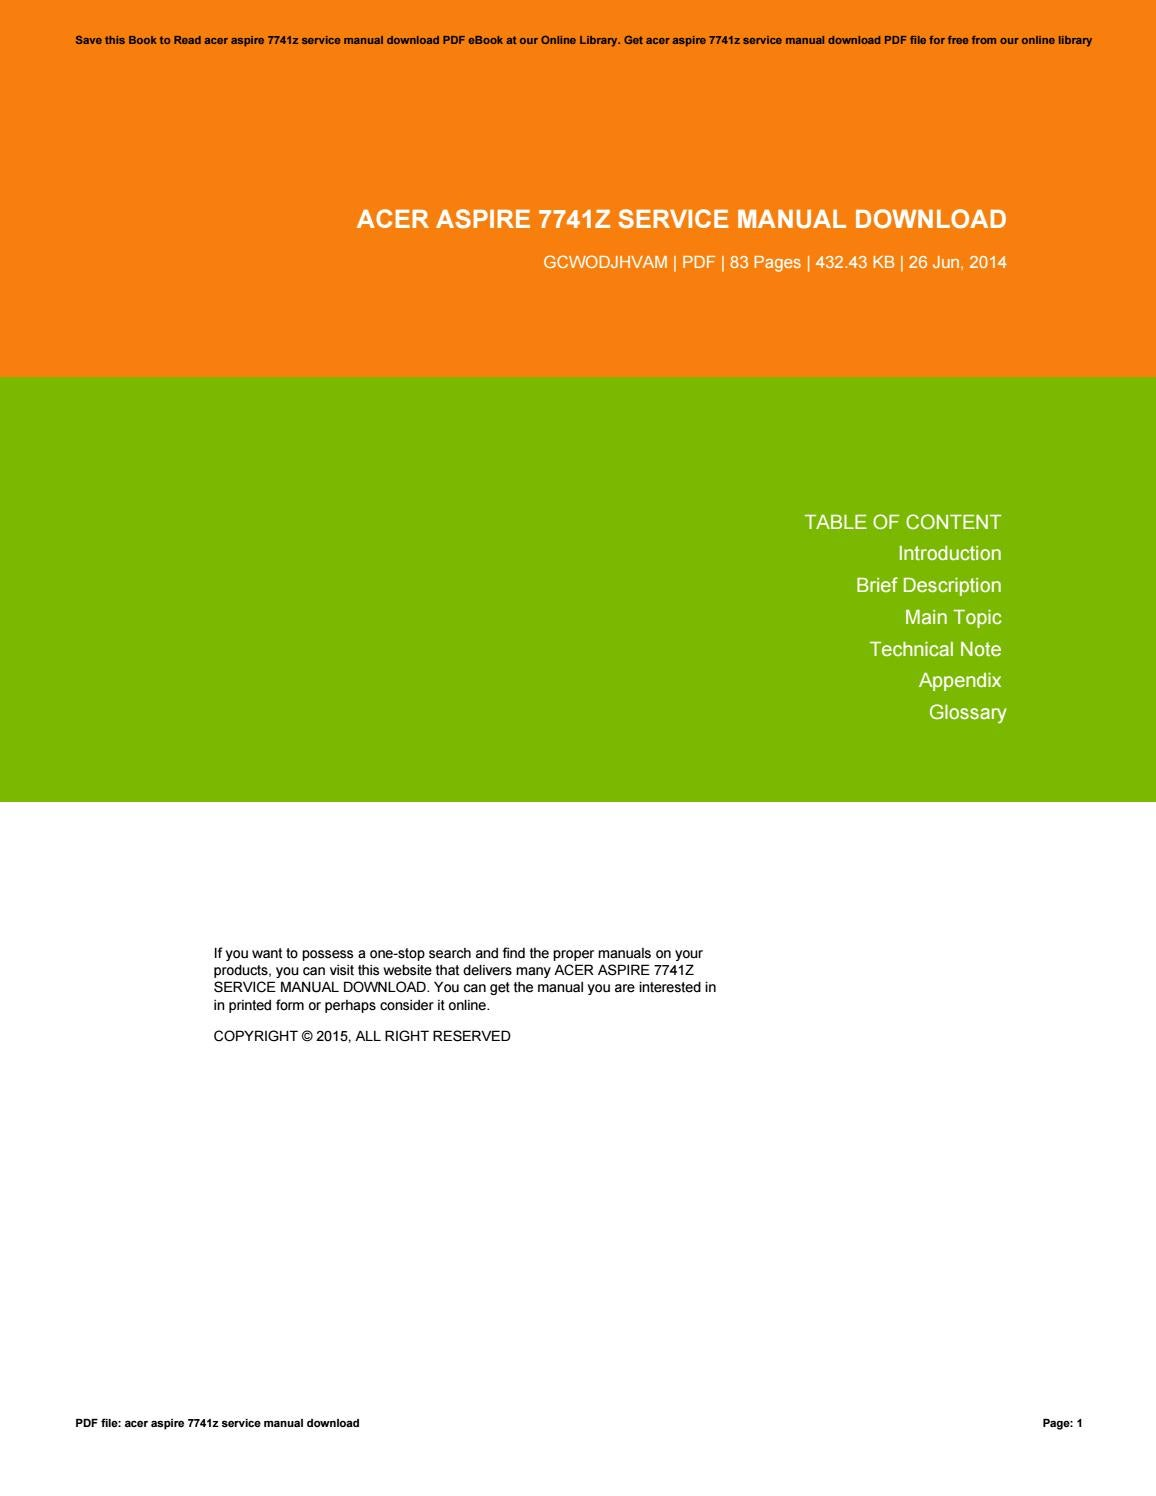 2015 hd serice manual pdf download array acer aspire 7741z service manual download by janicecheng4155 issuu rh issuu fandeluxe Images